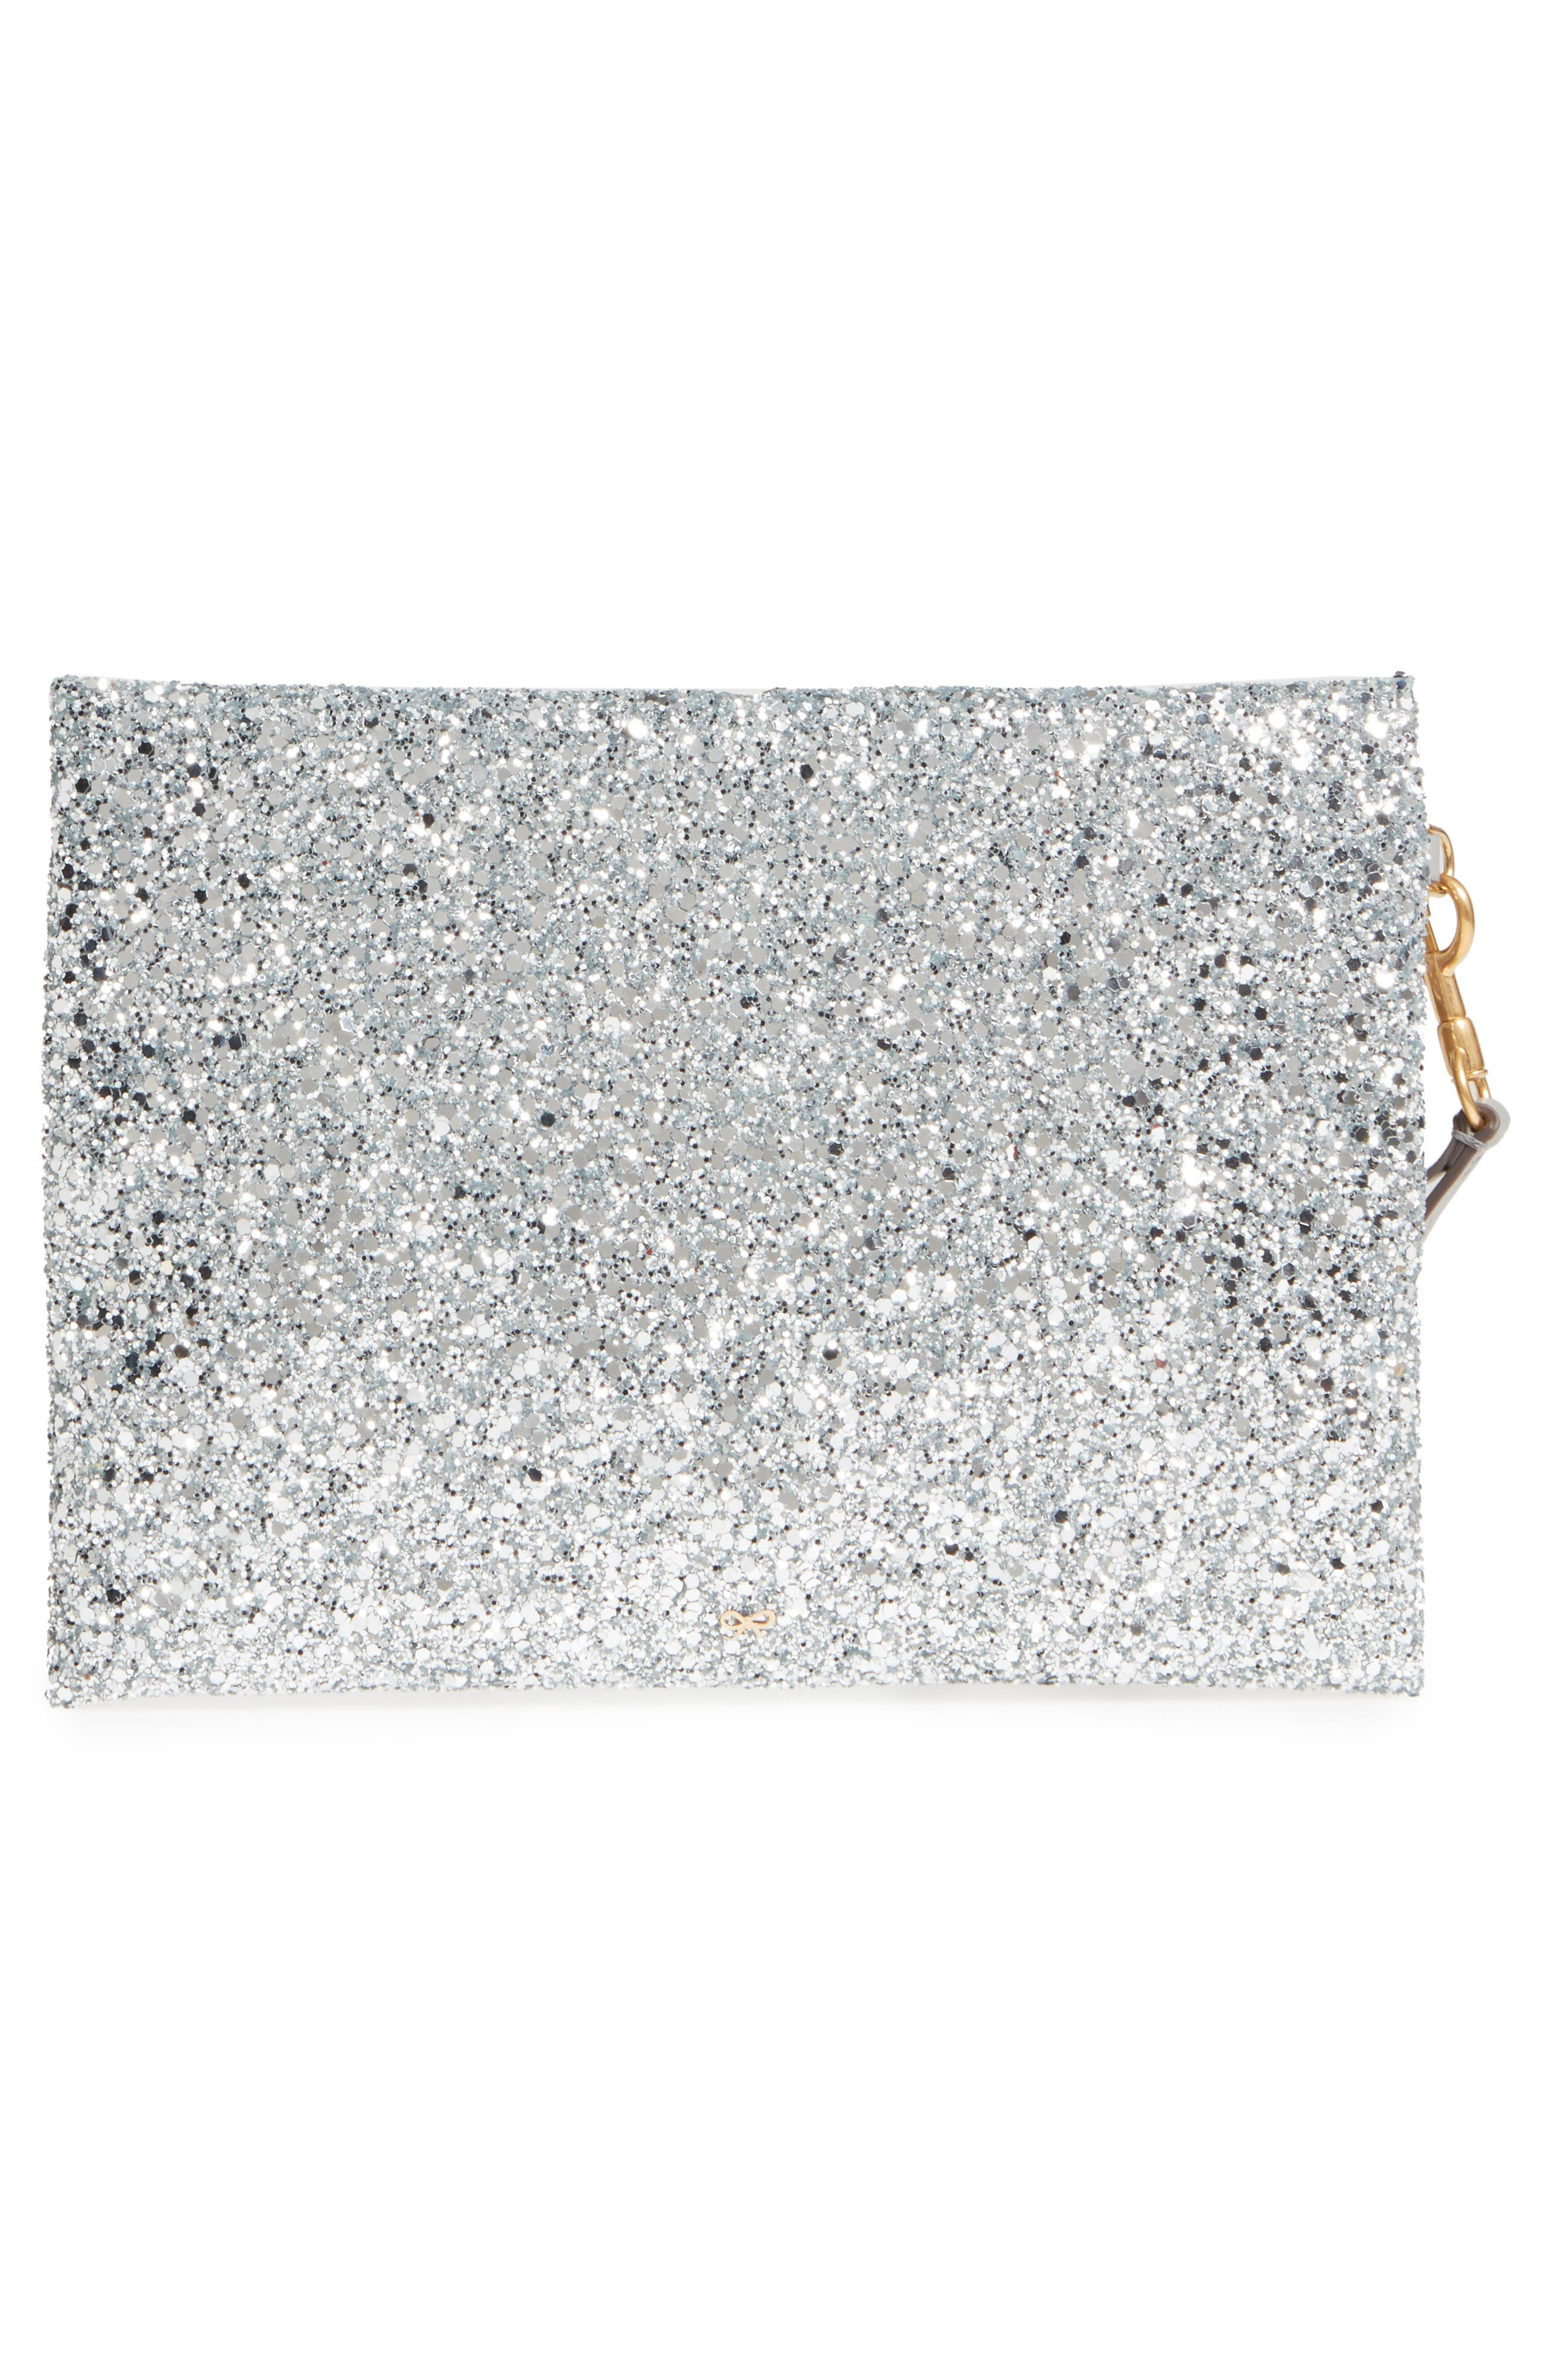 Eyes Circulus Glitter Pouch,                             Alternate thumbnail 3, color,                             Silver